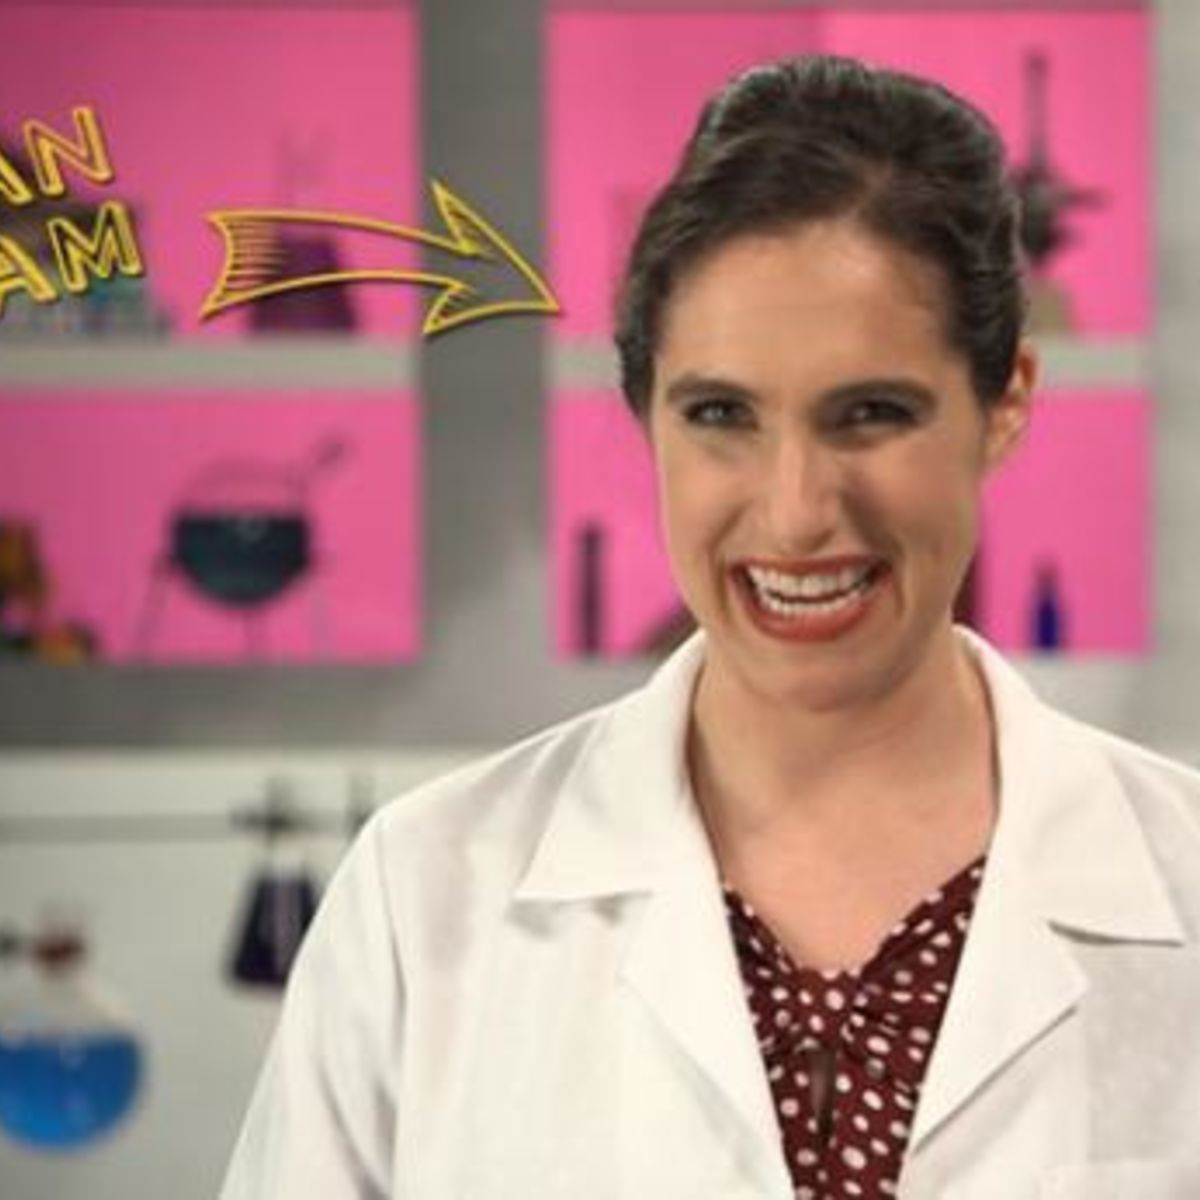 megan_amram.jpg.CROP.rectangle-large_0.jpg